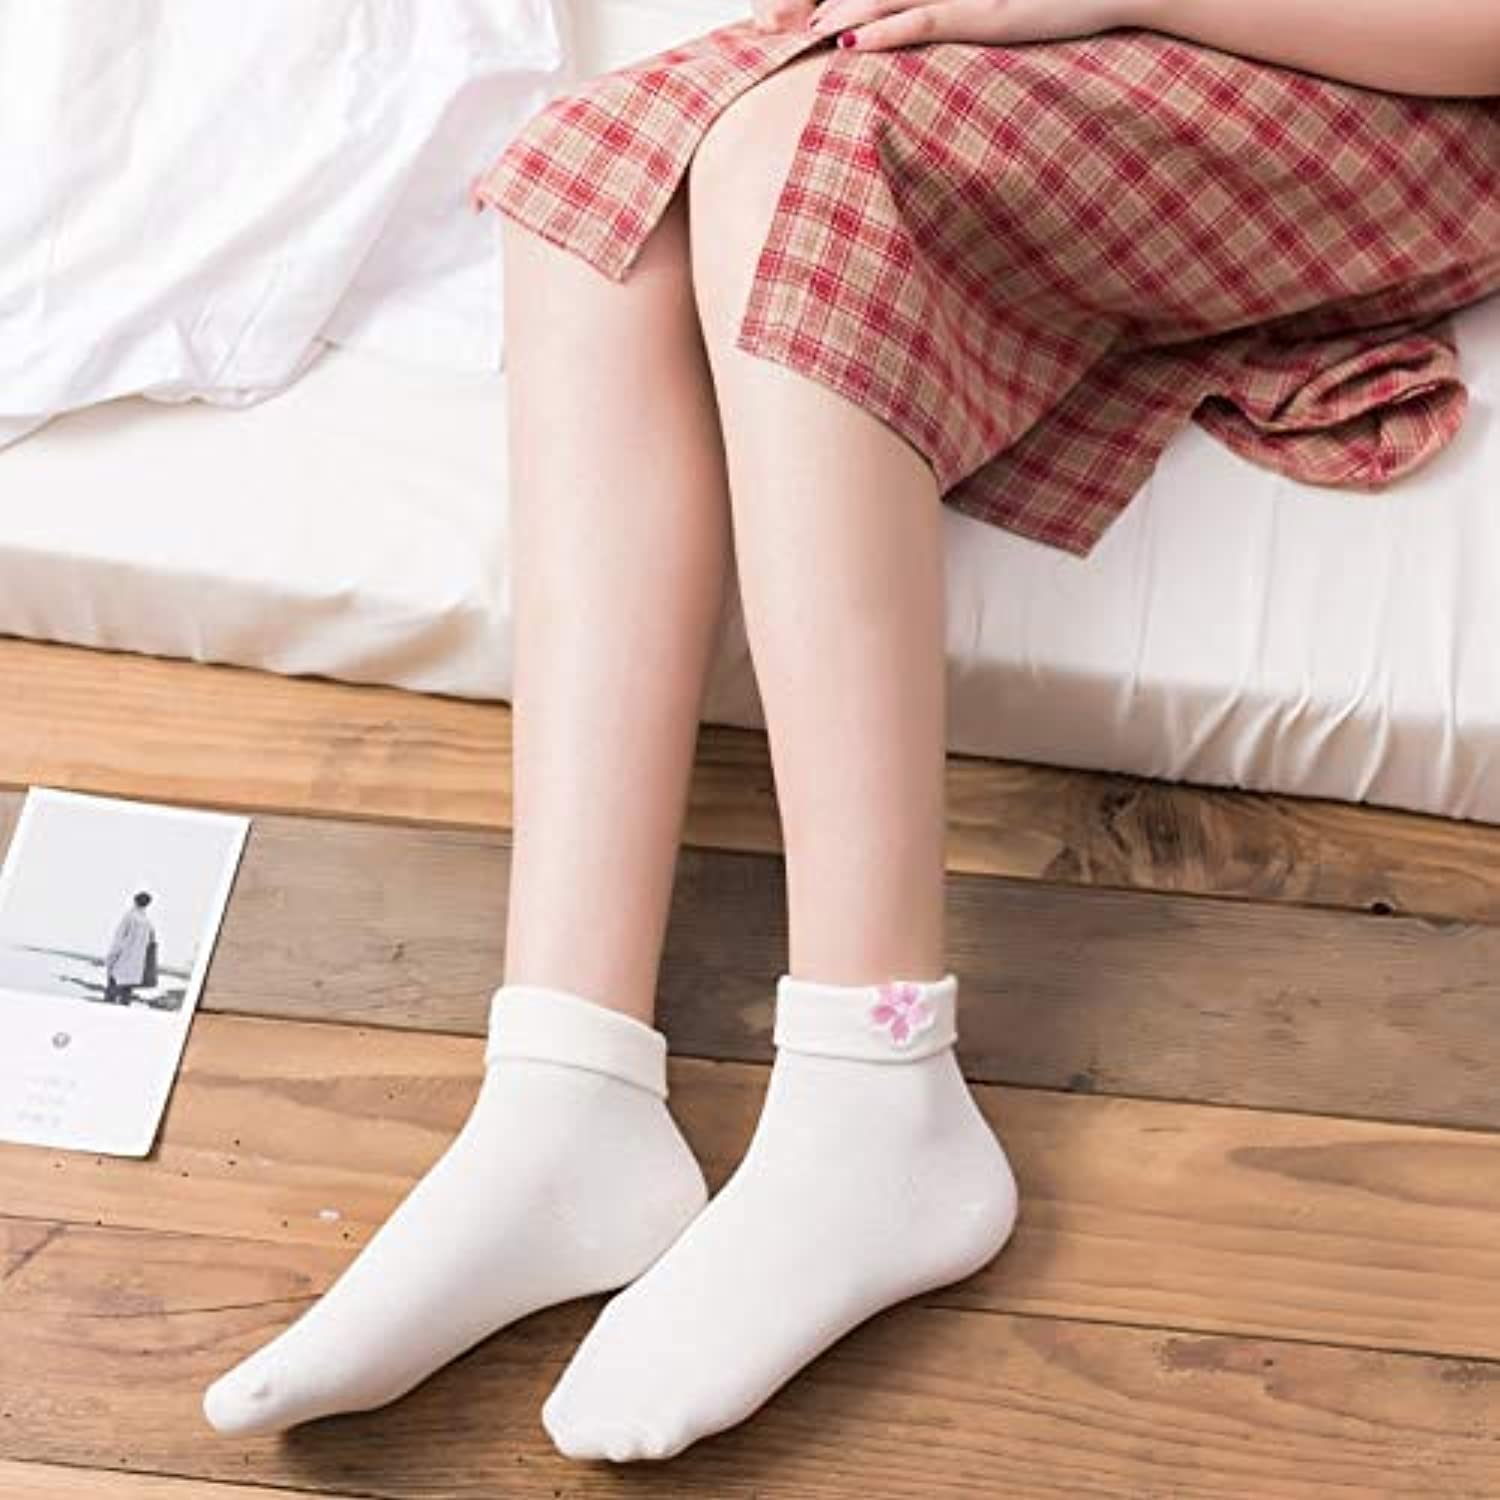 Comfortable Arm Warmer Leg Stocking Home Japanese Cuffed Embroidery Cherry Tube in The Tube Socks (color   White)